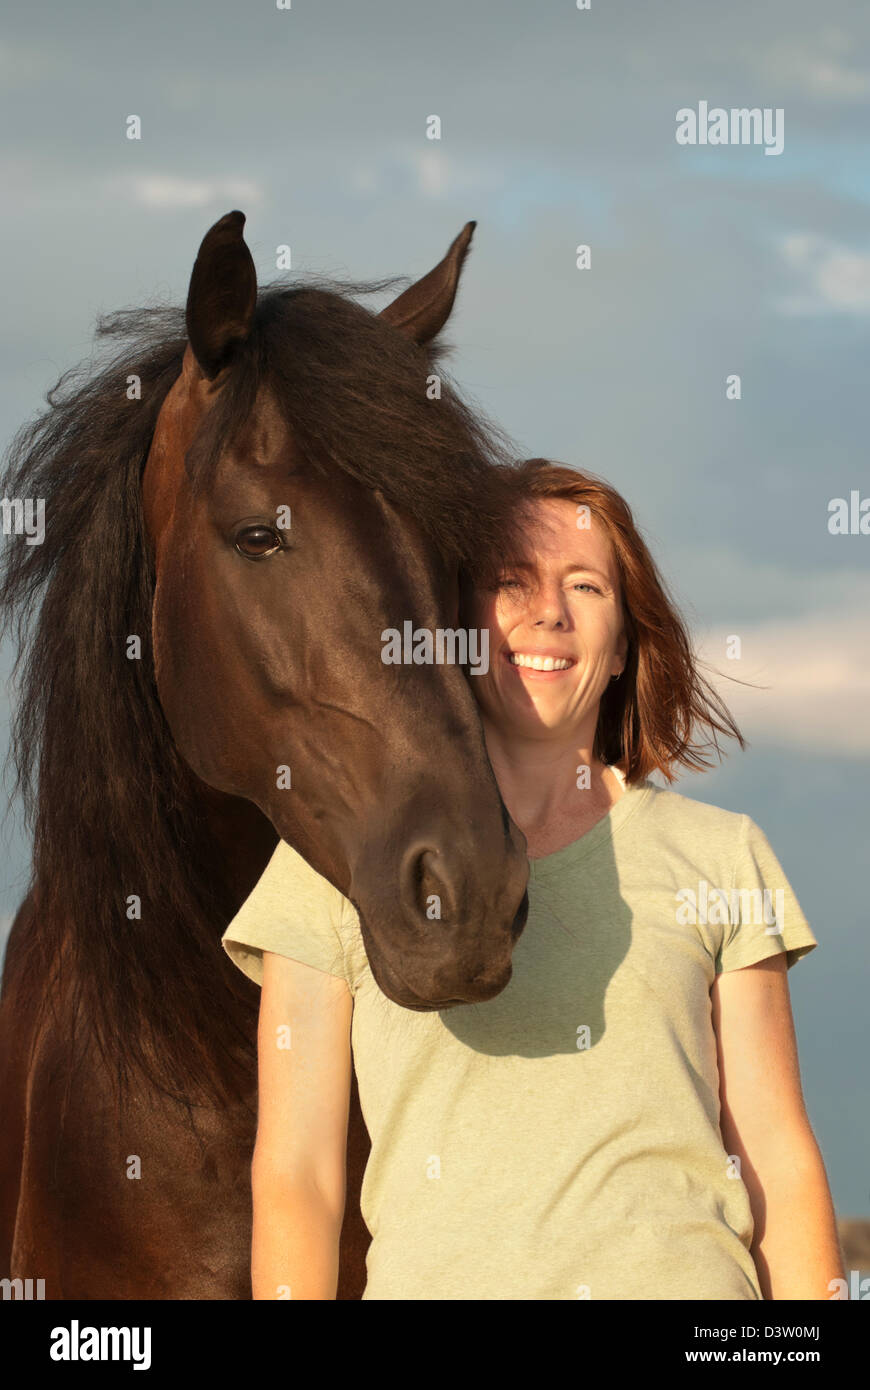 Woman horse trainer beside large black animal, smiling, happy, and confident horsewoman portrait in sunlight. - Stock Image